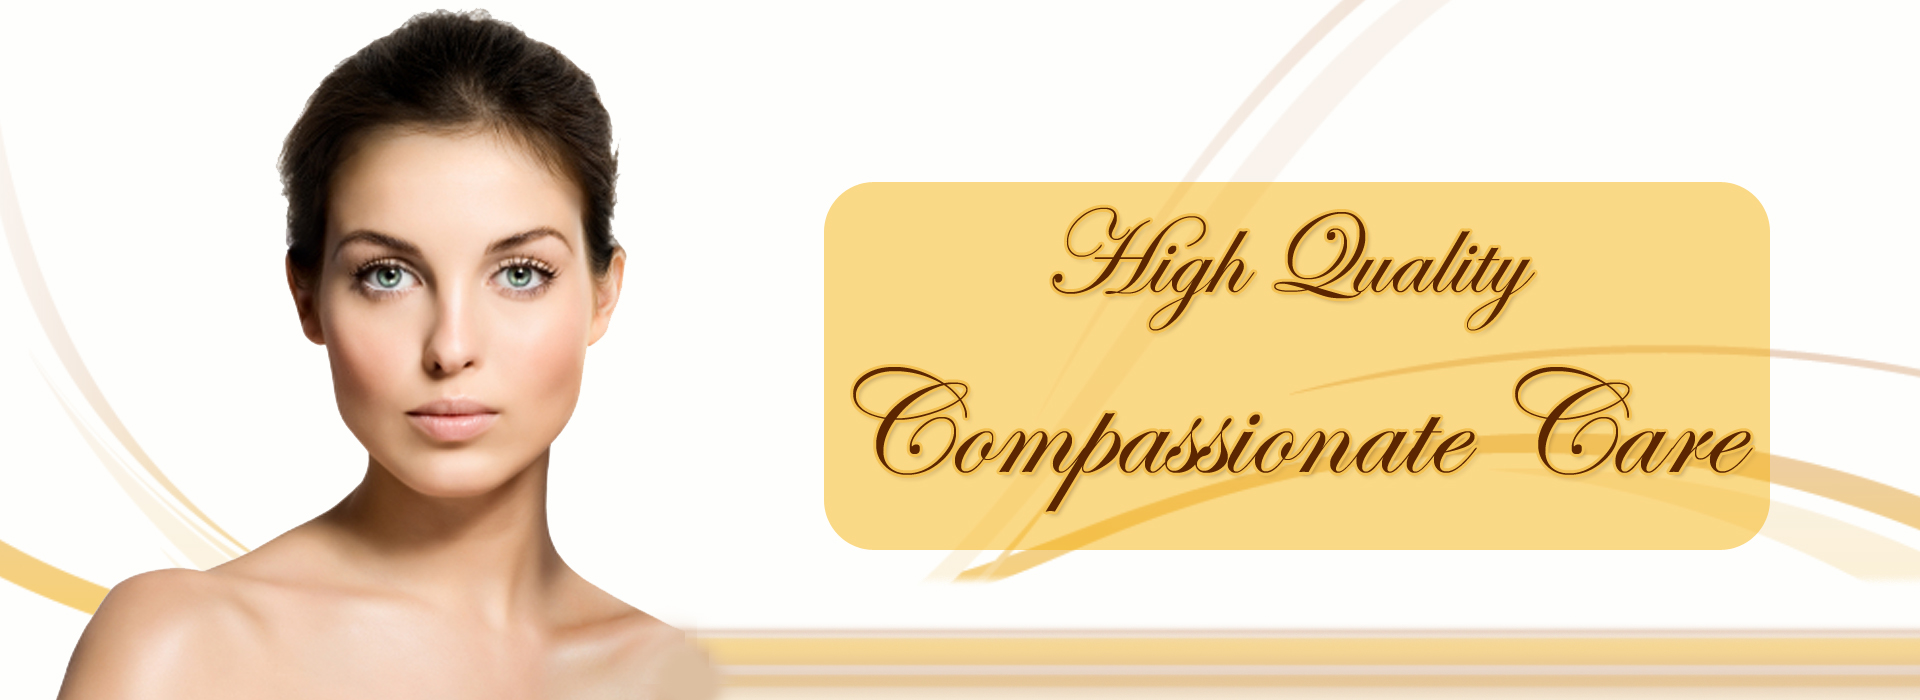 picture of a lady with a beautiful skin showing high quality compassionate care